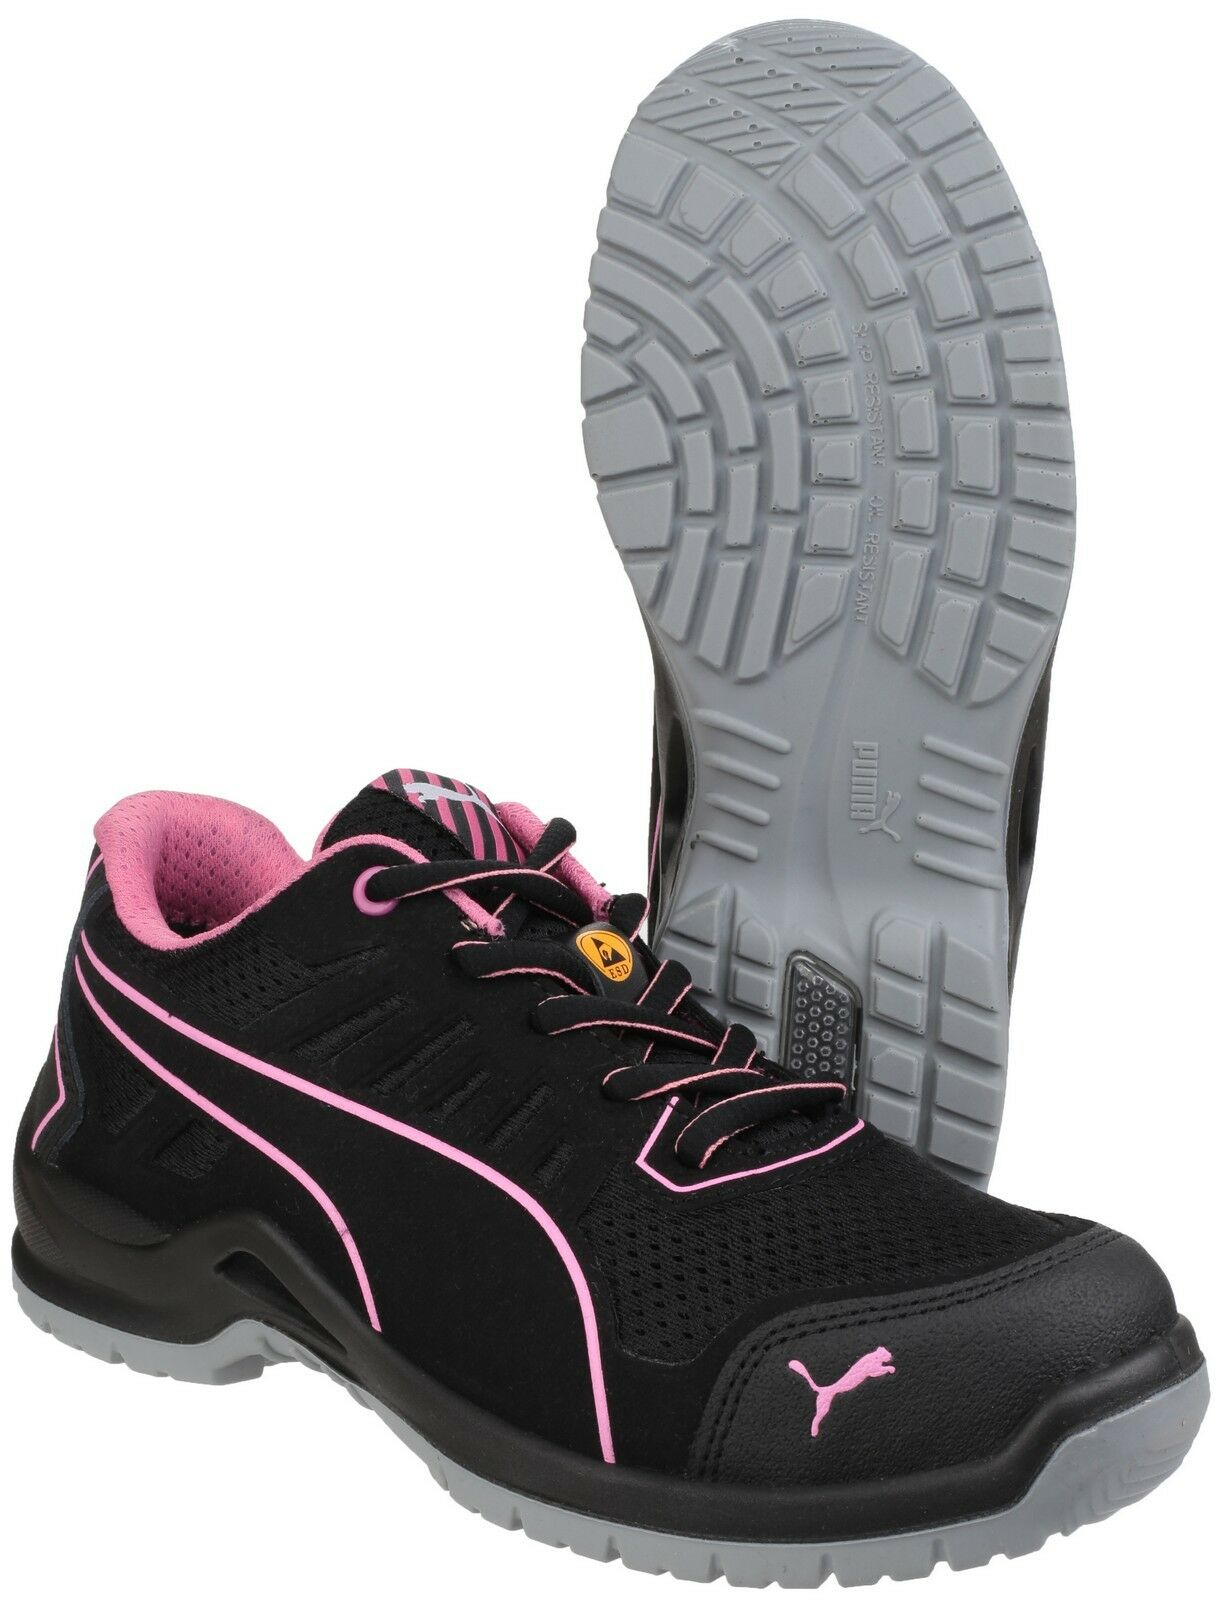 Puma Fuse TC rose Low Safety femmes Industrial Work Trainers Chaussures UK3-8